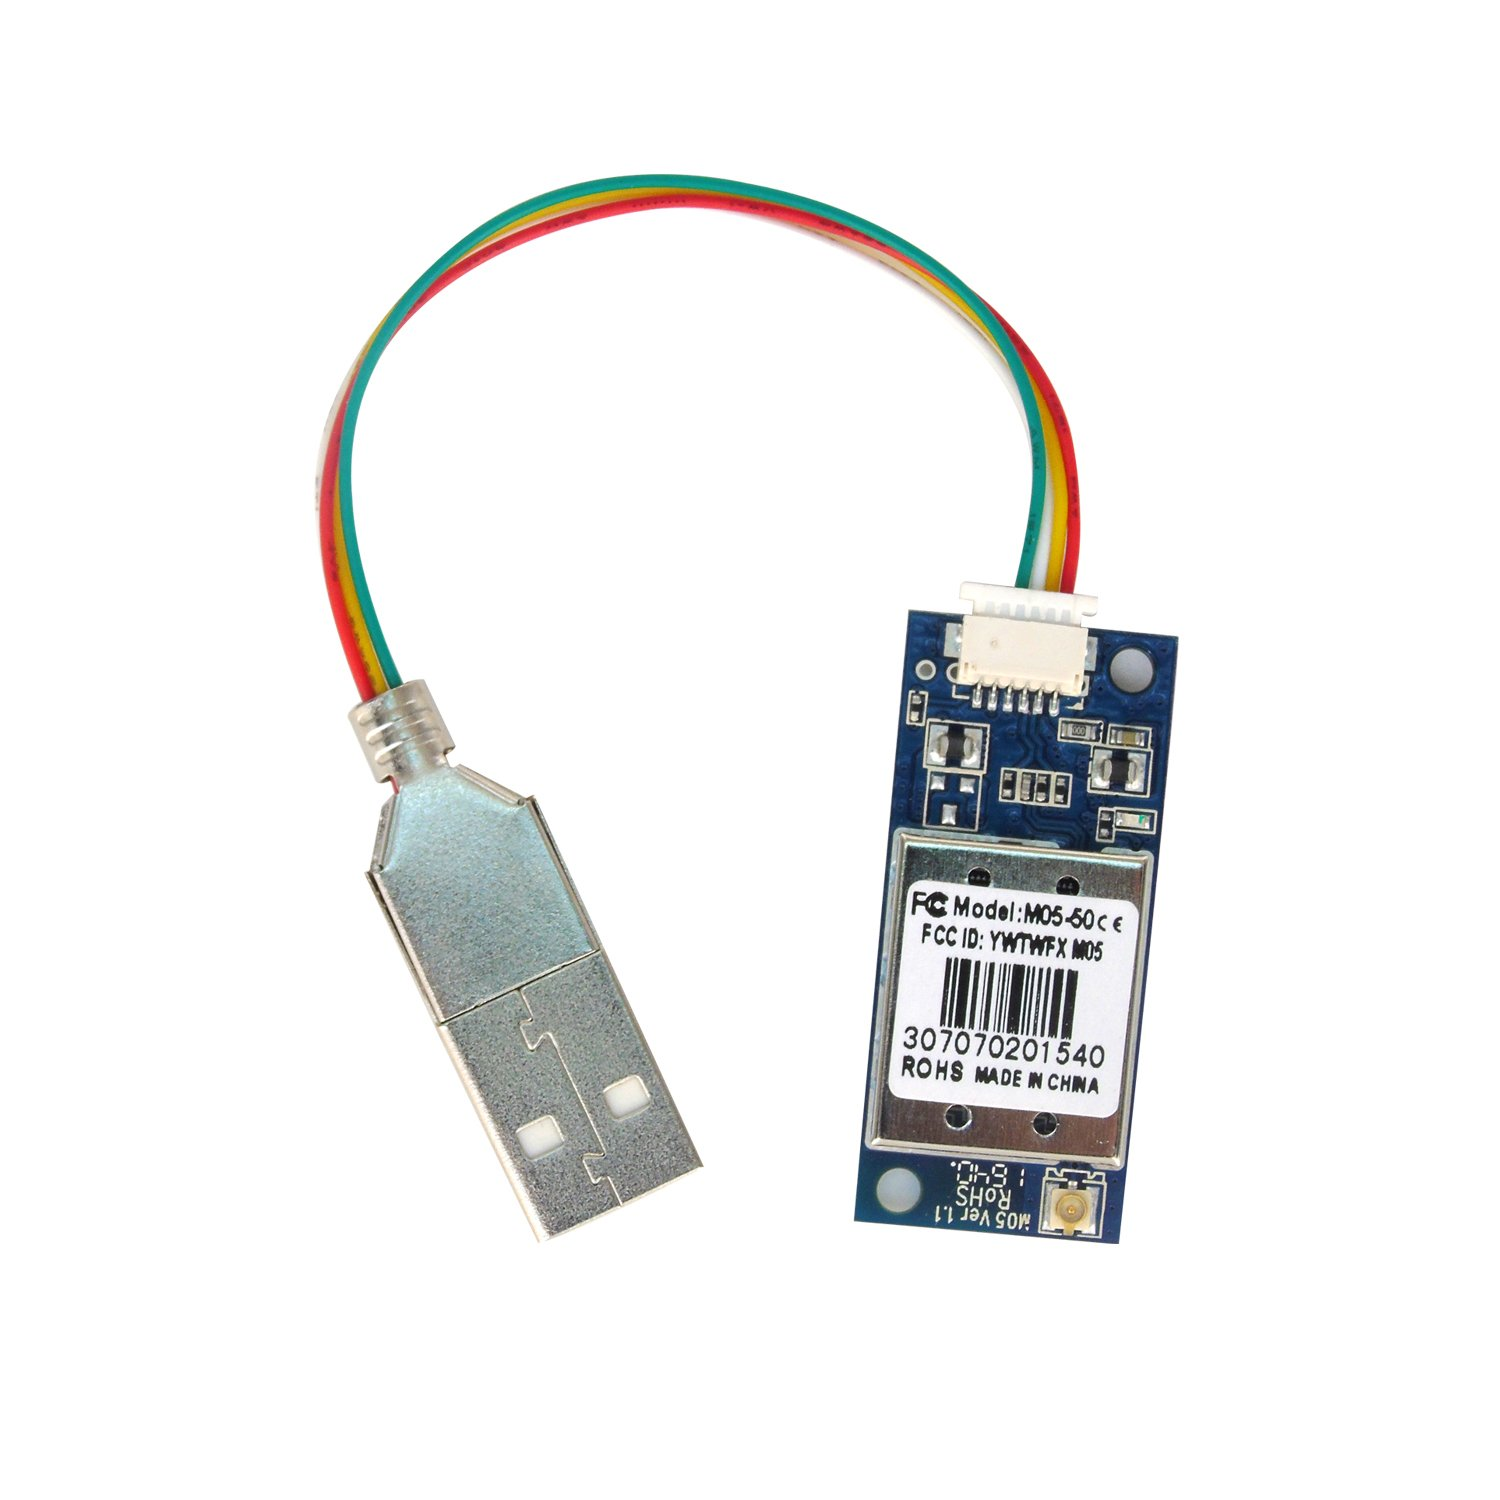 HLK-3M05 USB WIFI Module Wireless Network Card Support Linux/Wince Driver